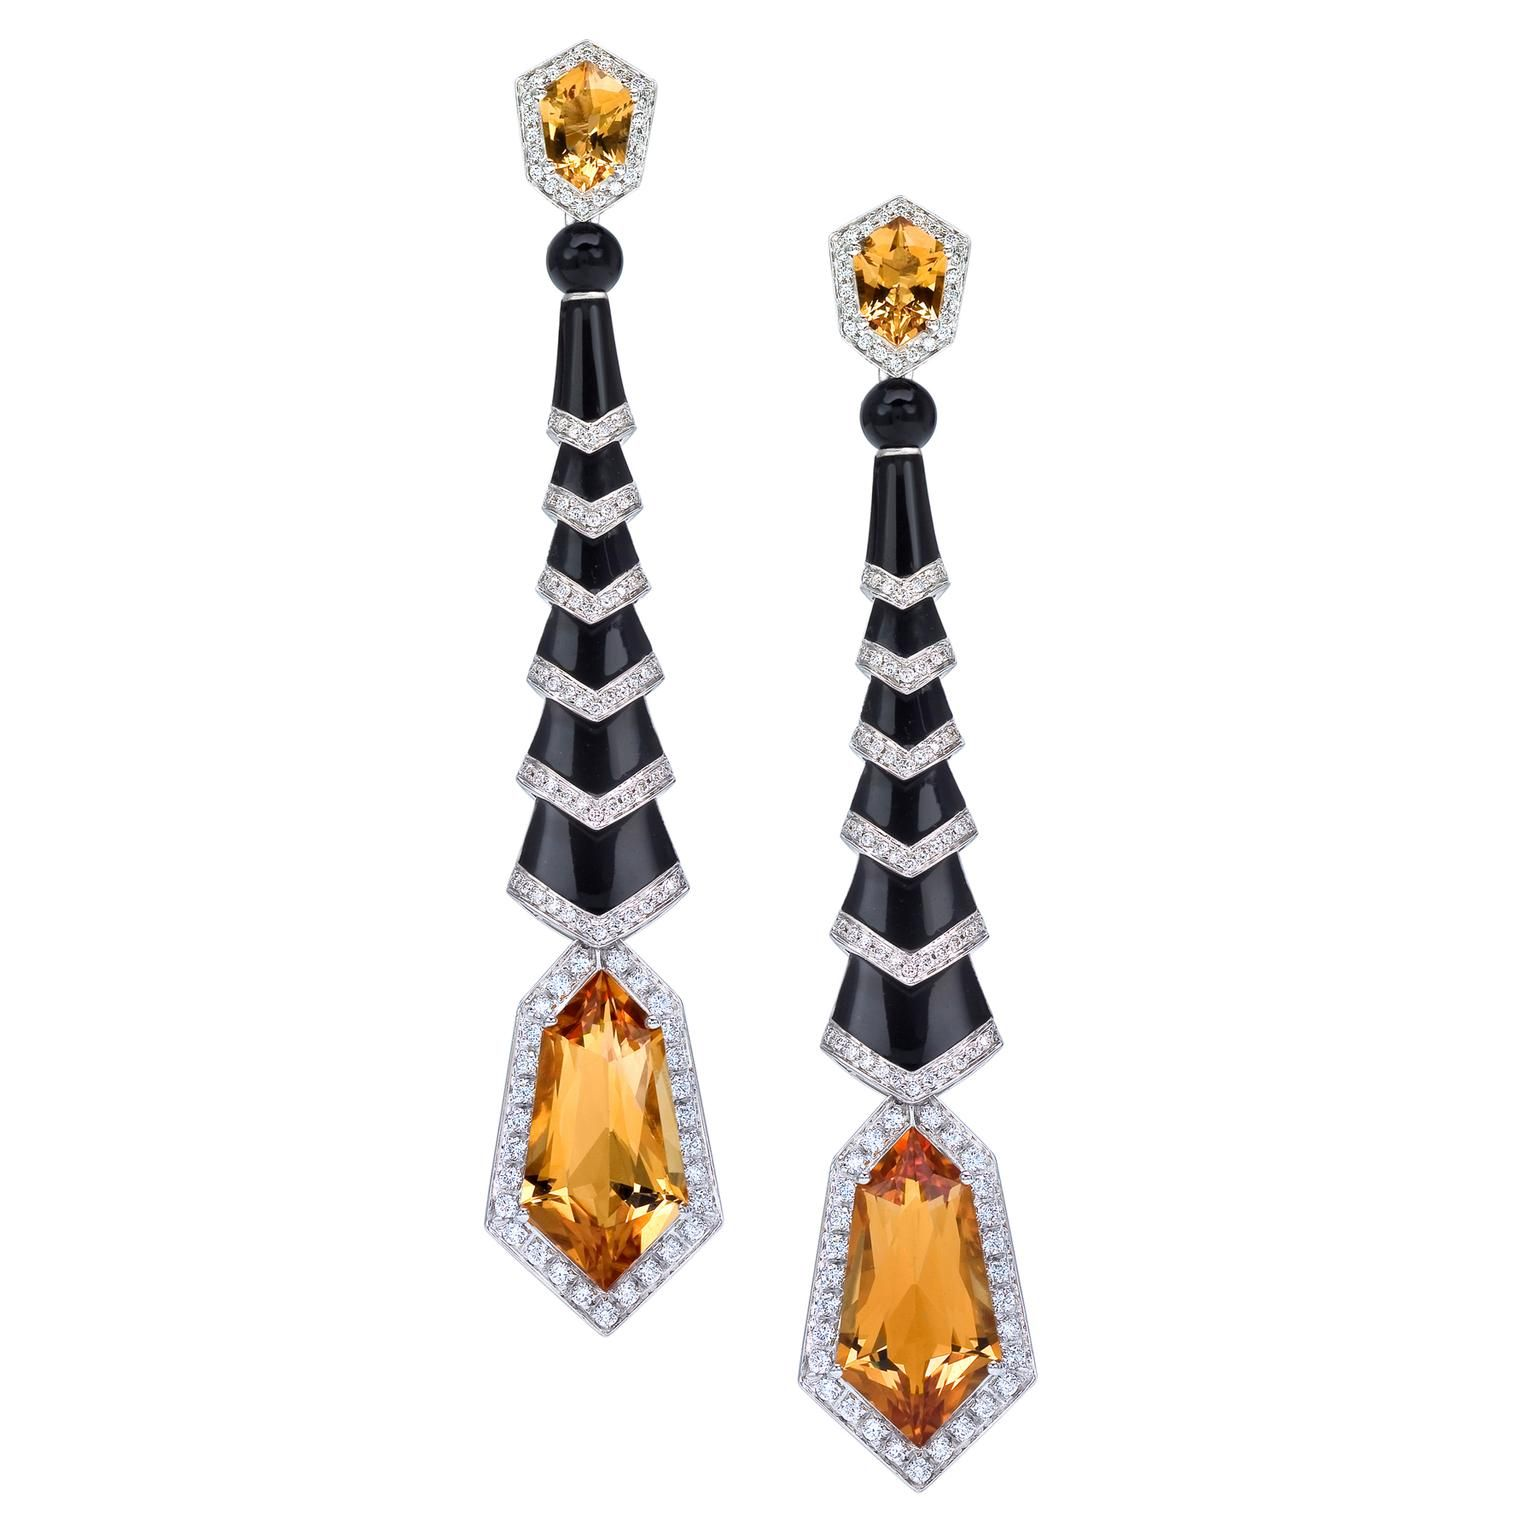 Gatsby earrings with yellow citrine and black onyx #biju #bijuteria #bijuterias